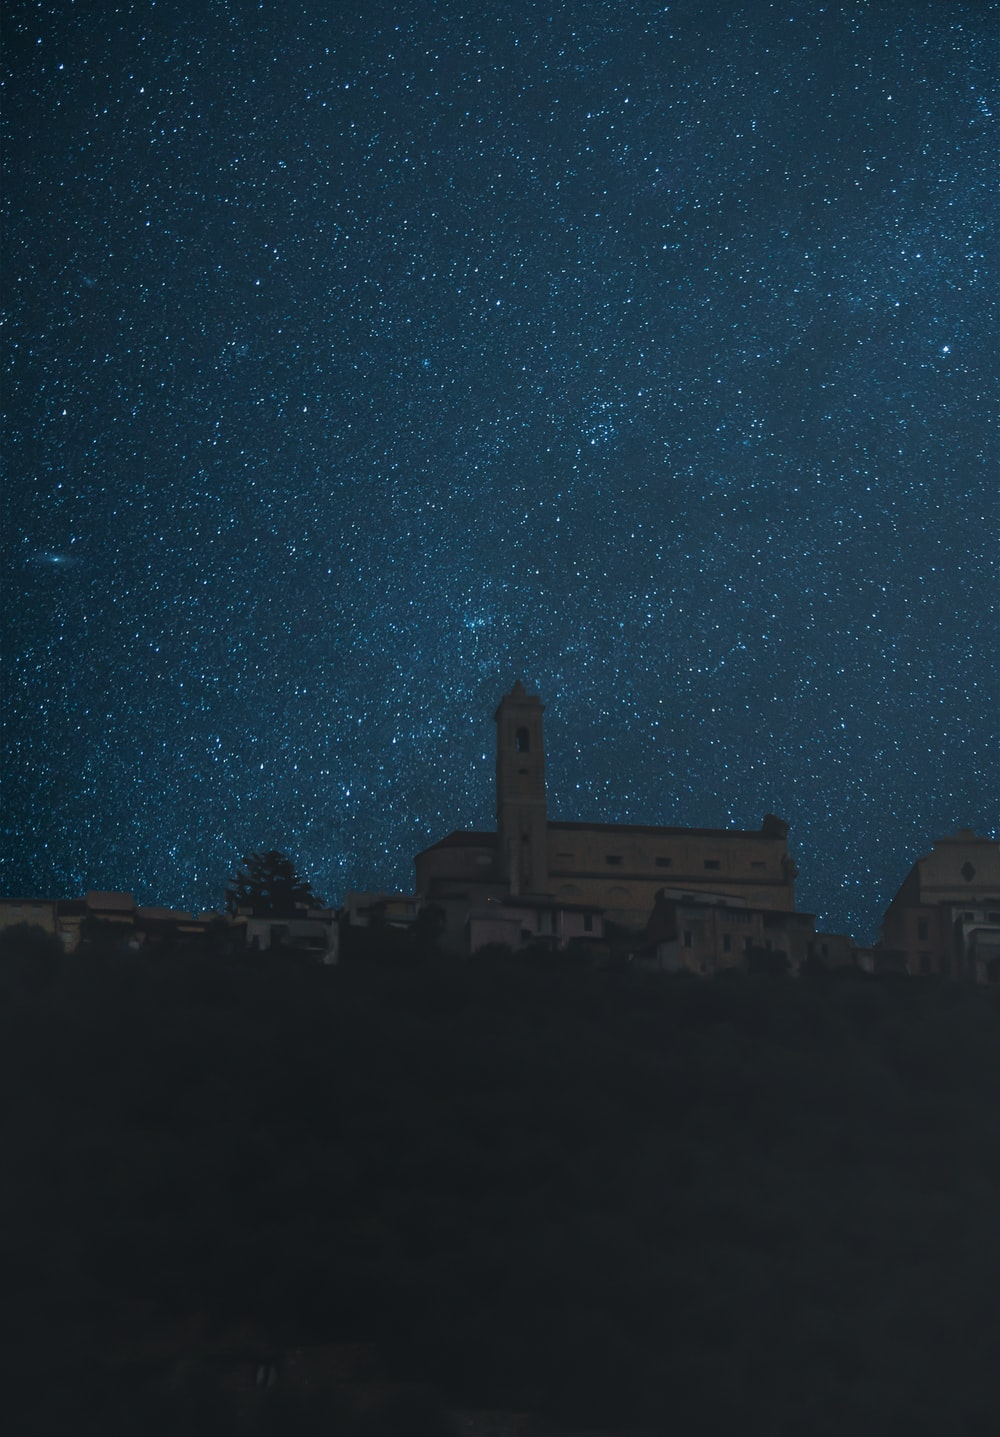 low-angle photography of church under a starry night sky